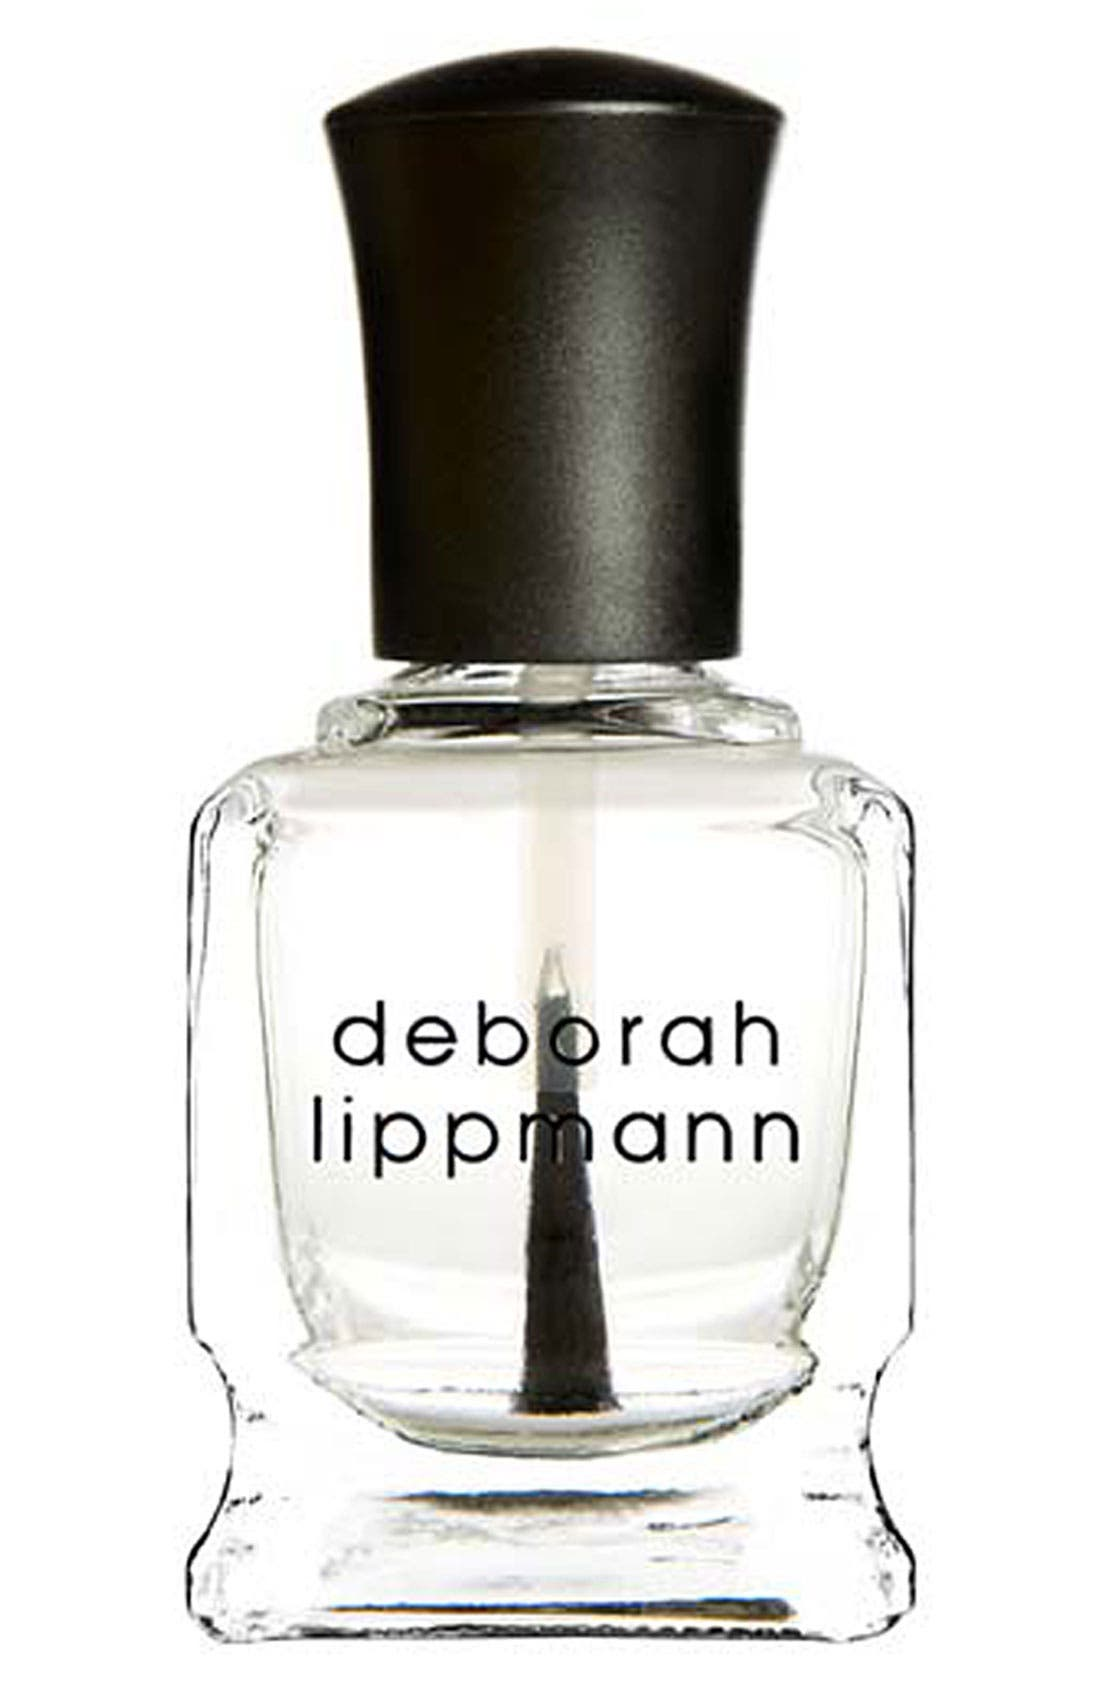 Deborah Lippmann 'Addicted To Speed' Ultra Quick Dry Topcoat